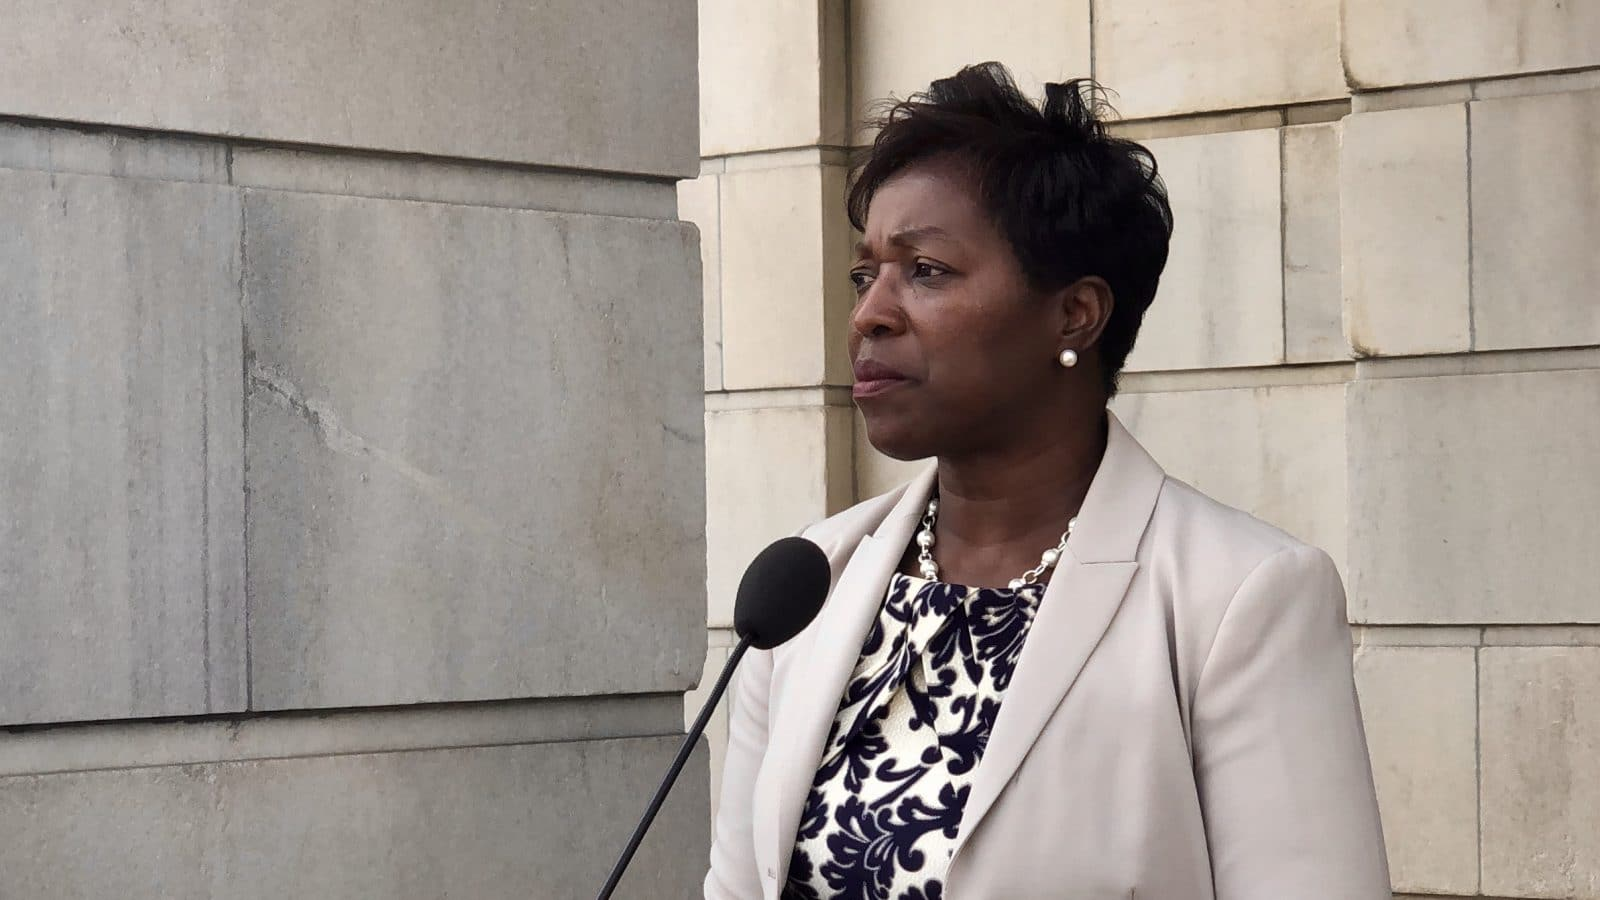 RI Black Business Association issues state a failing grade after Disparity Report release